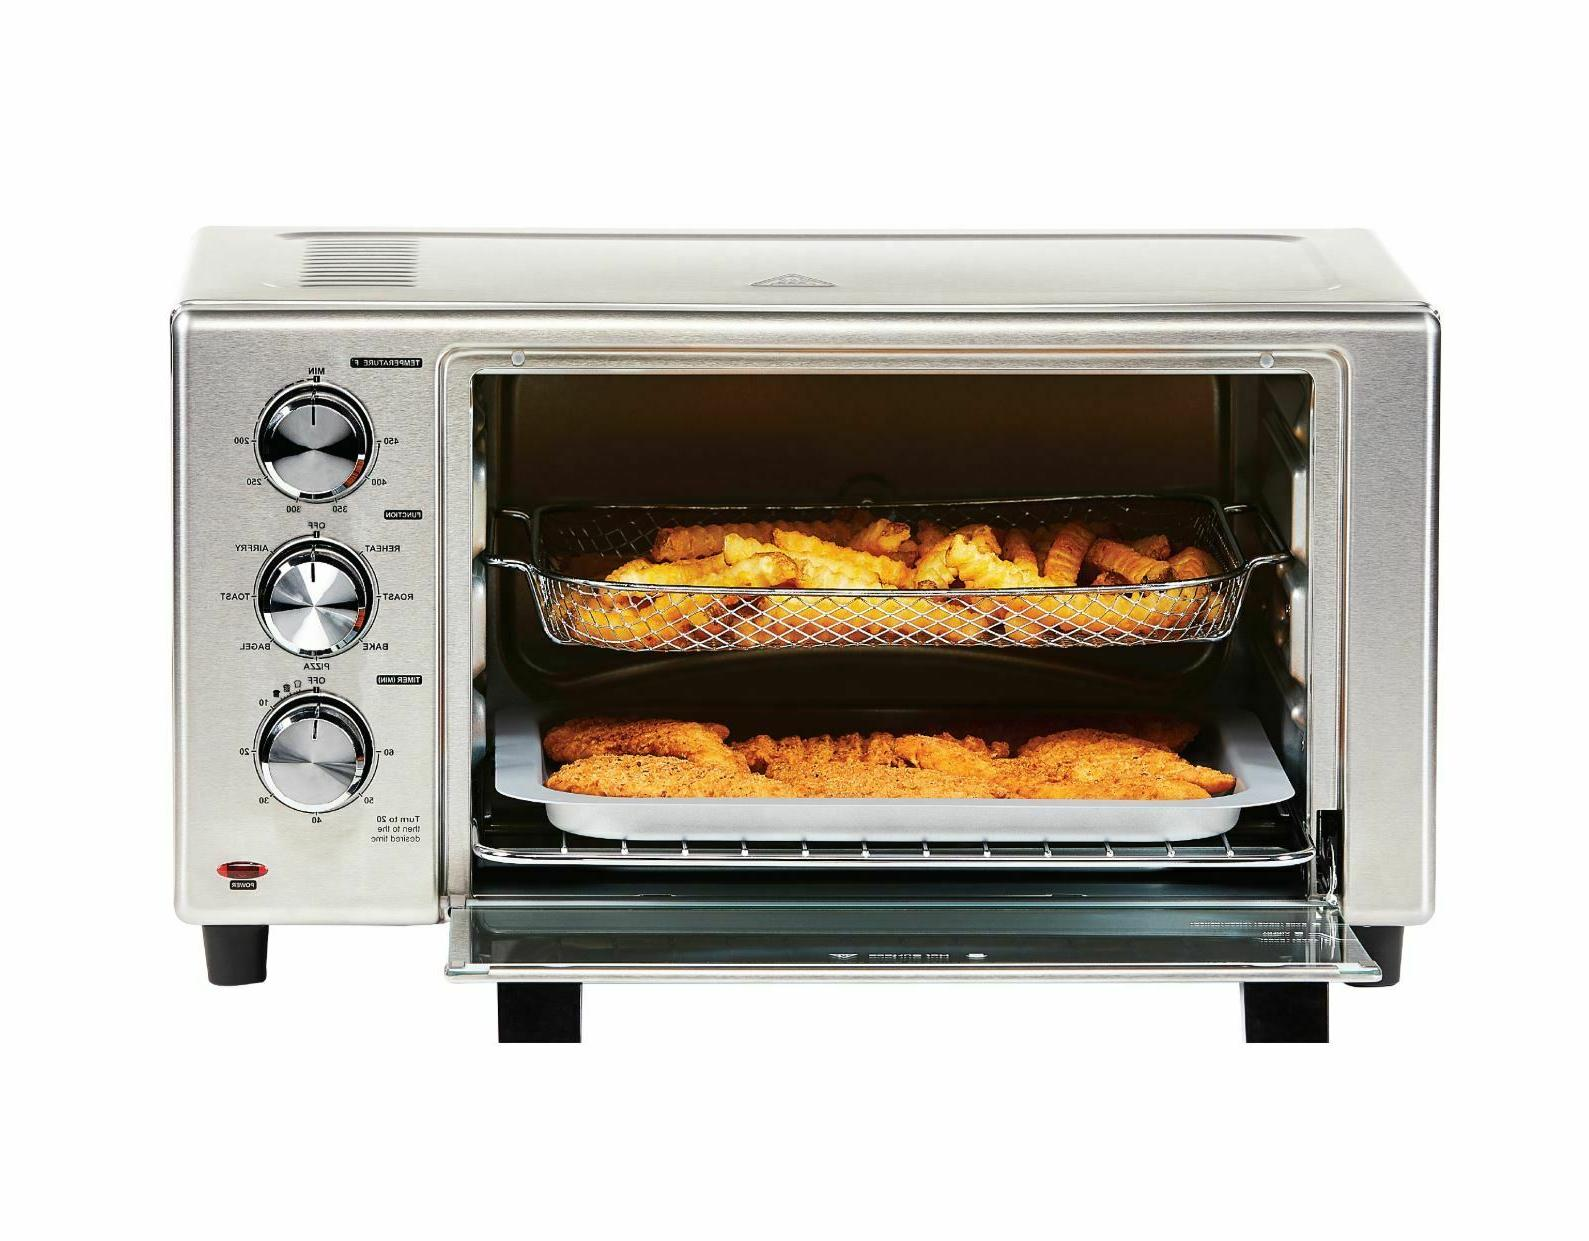 Large Fryer Size Bake Broil Counter